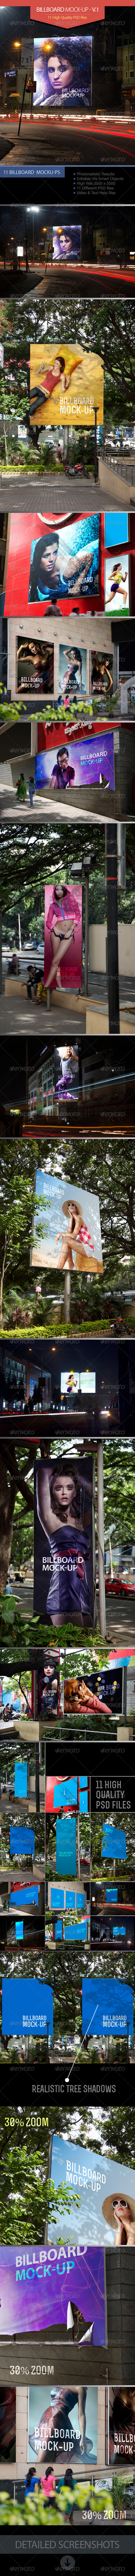 GraphicRiver Billboard Mock-Up 8491065